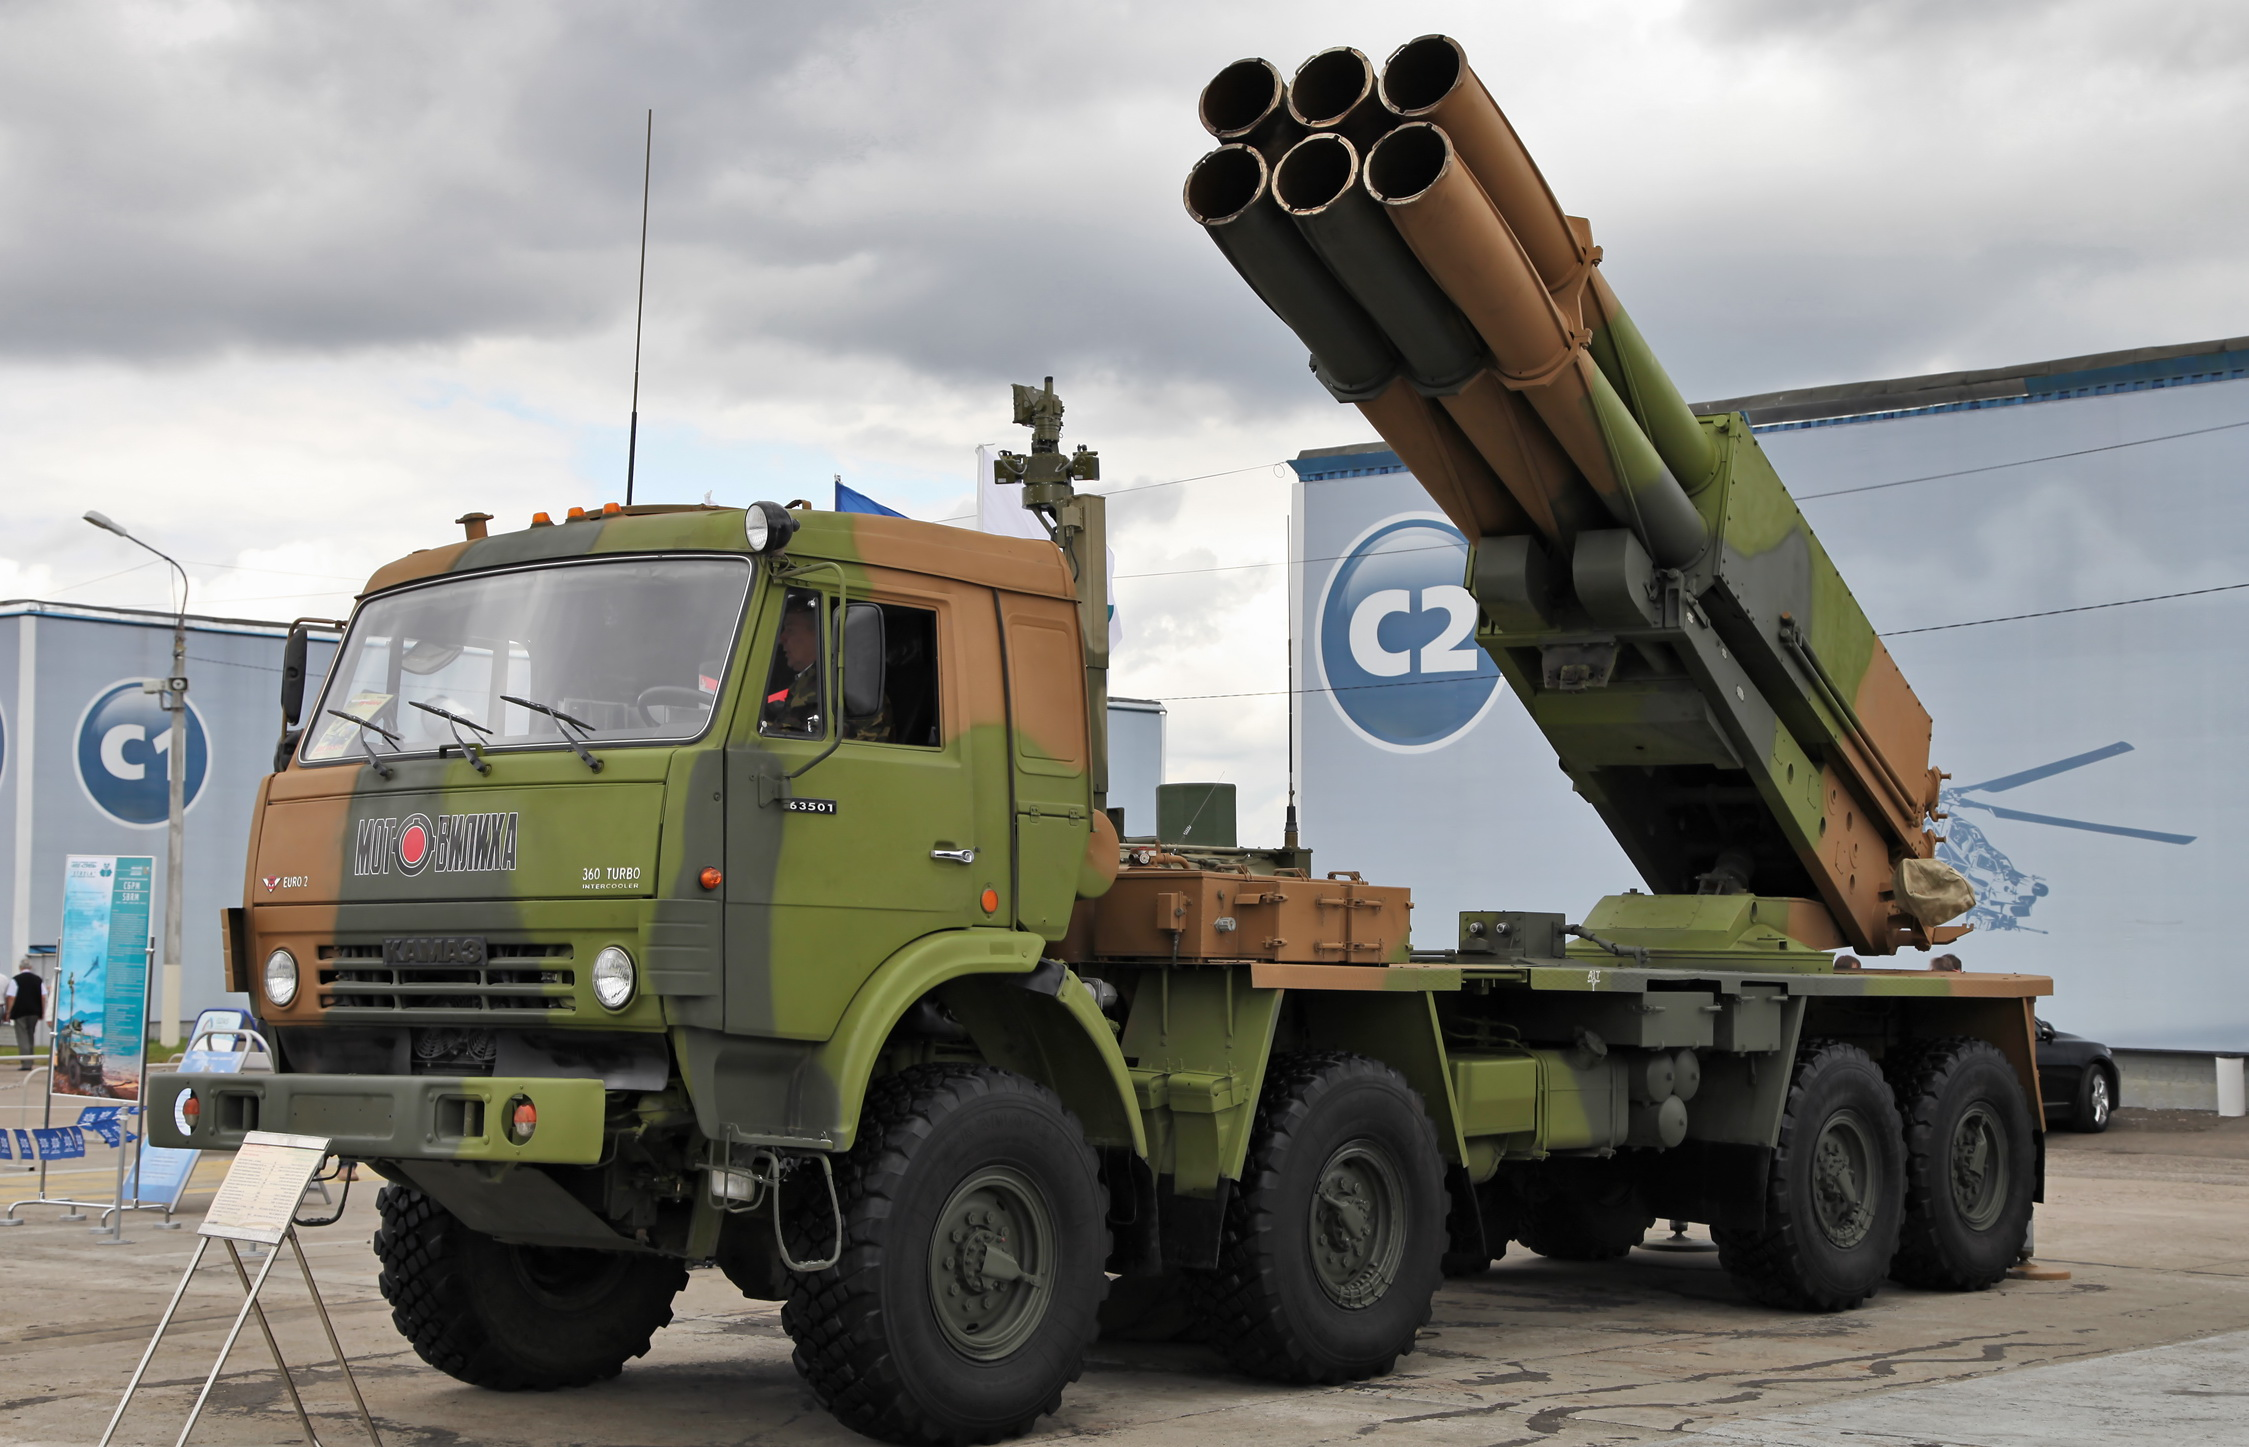 Russian MRLS: Grad, Uragan, Smerch, Tornado-G/S - Page 6 Combat_vehicle_9A52-4_Smerch_MLRS_(3)